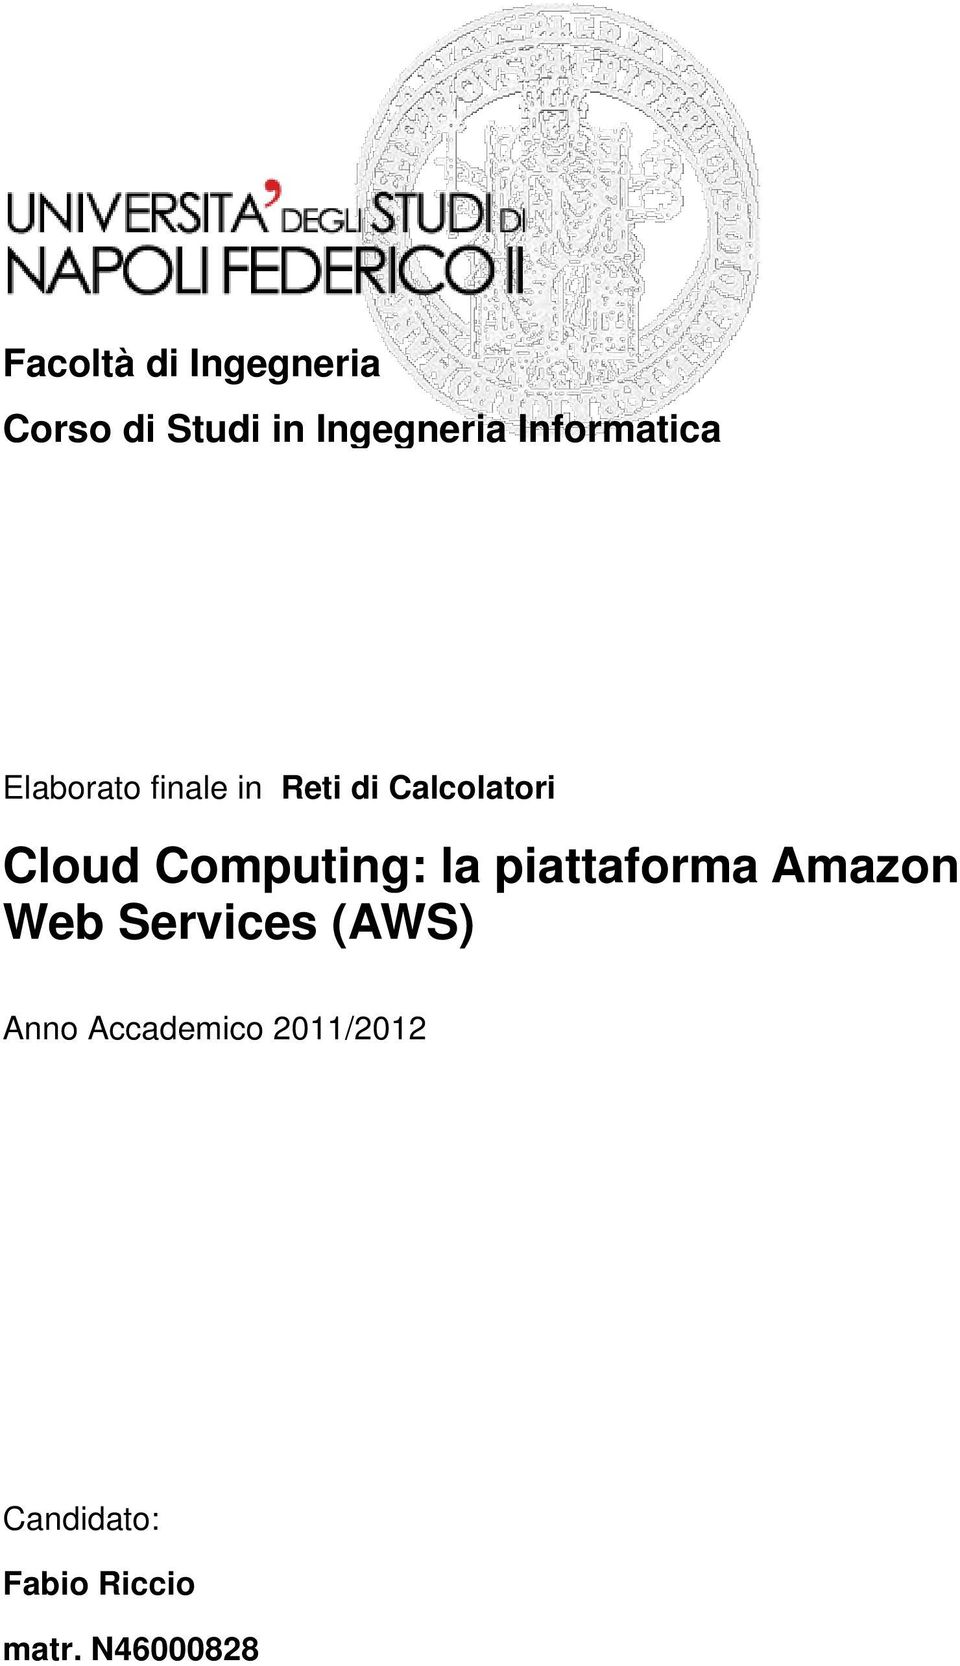 Cloud Computing: la piattaforma Amazon Web Services